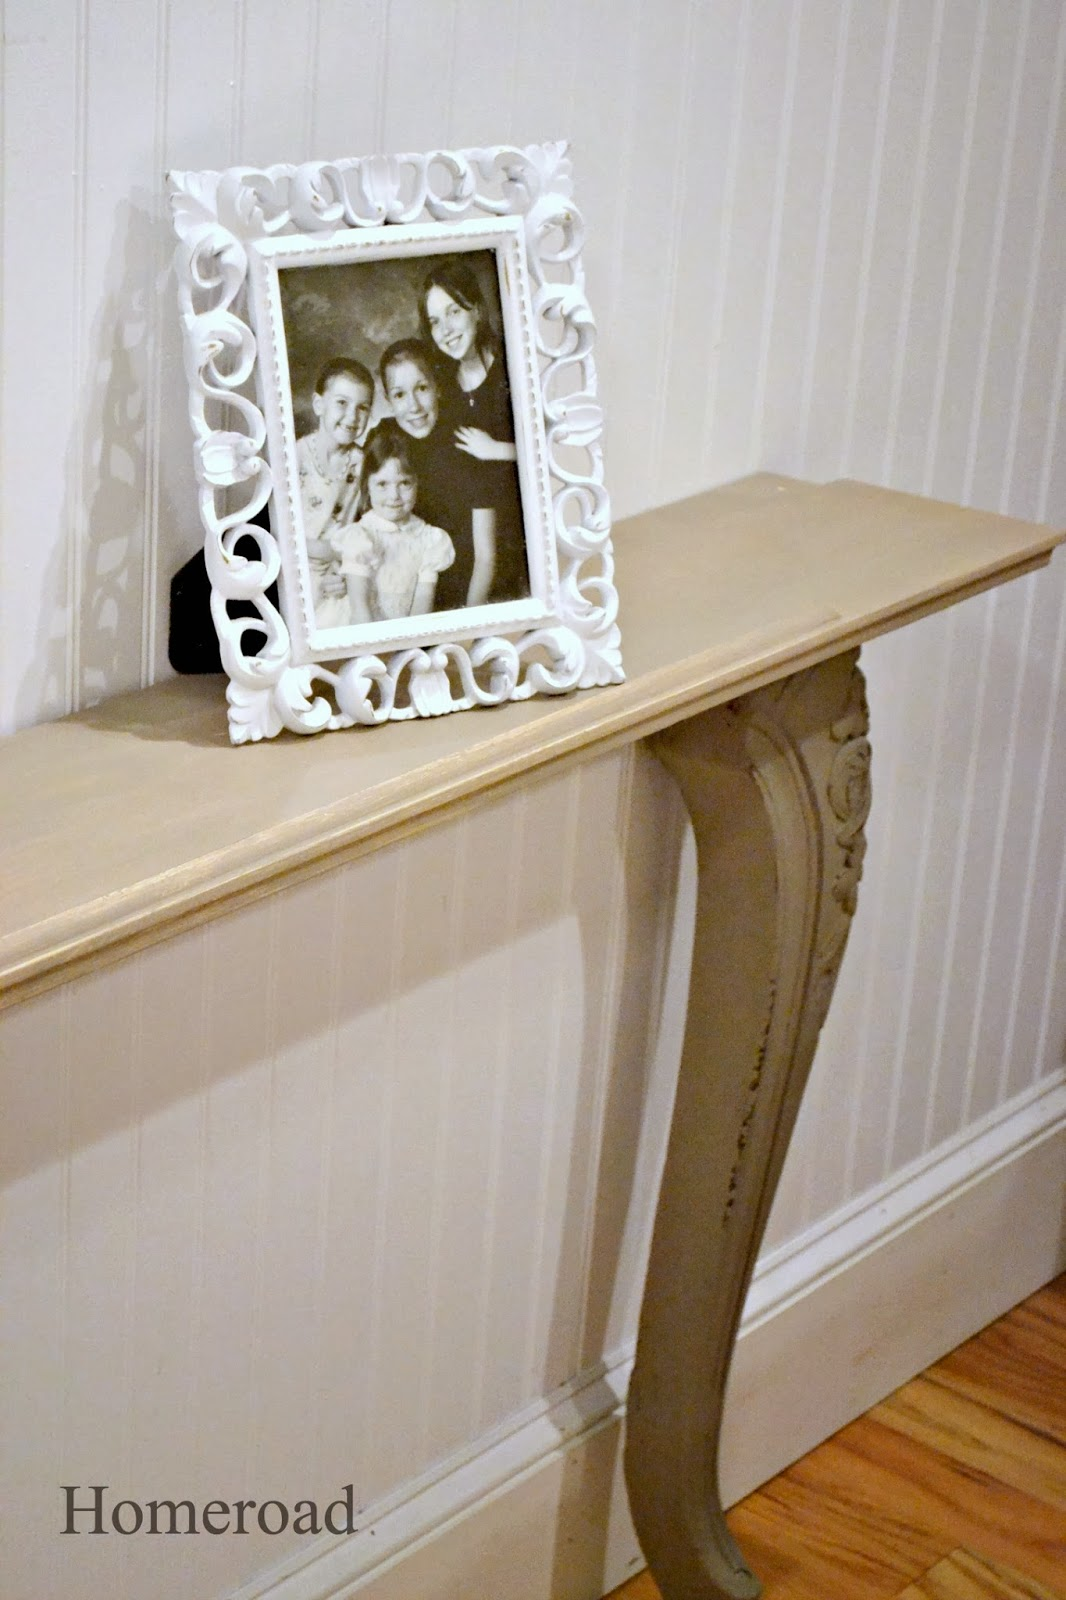 sofa table on wall sofas and chairs roseville diy narrow or homeroad